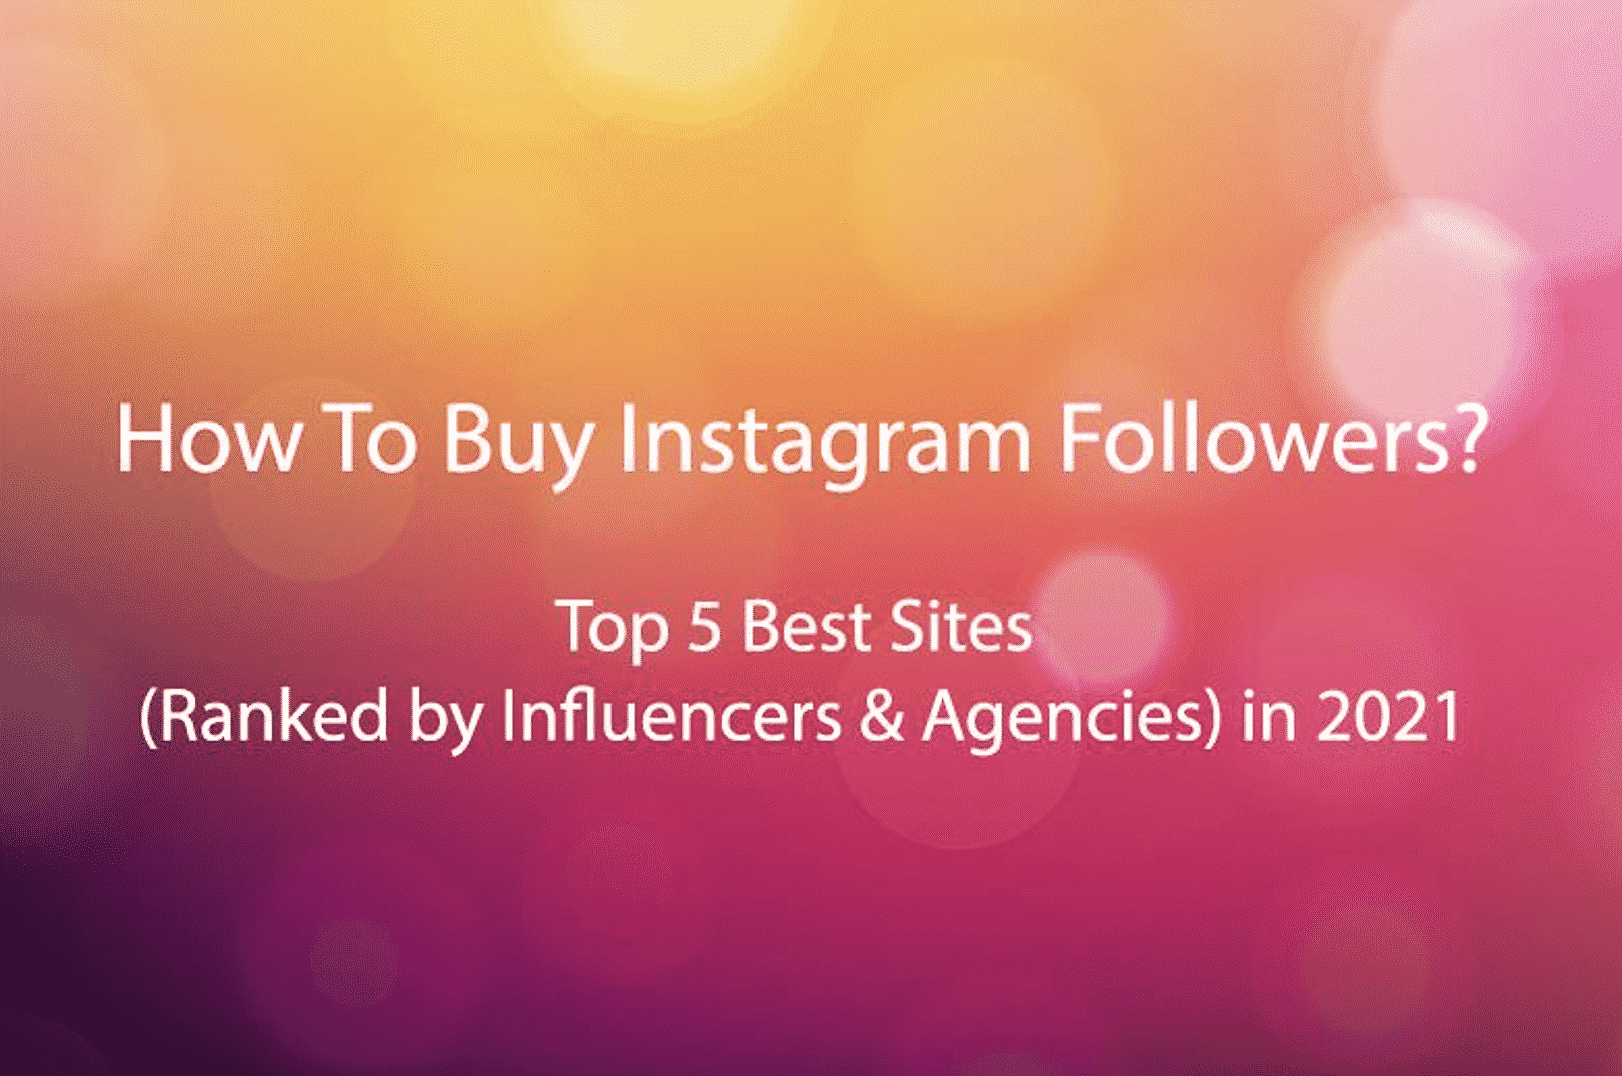 How To Buy Instagram Followers - 5 Best Sites (Ranked by Influencers & Agencies) in 2021